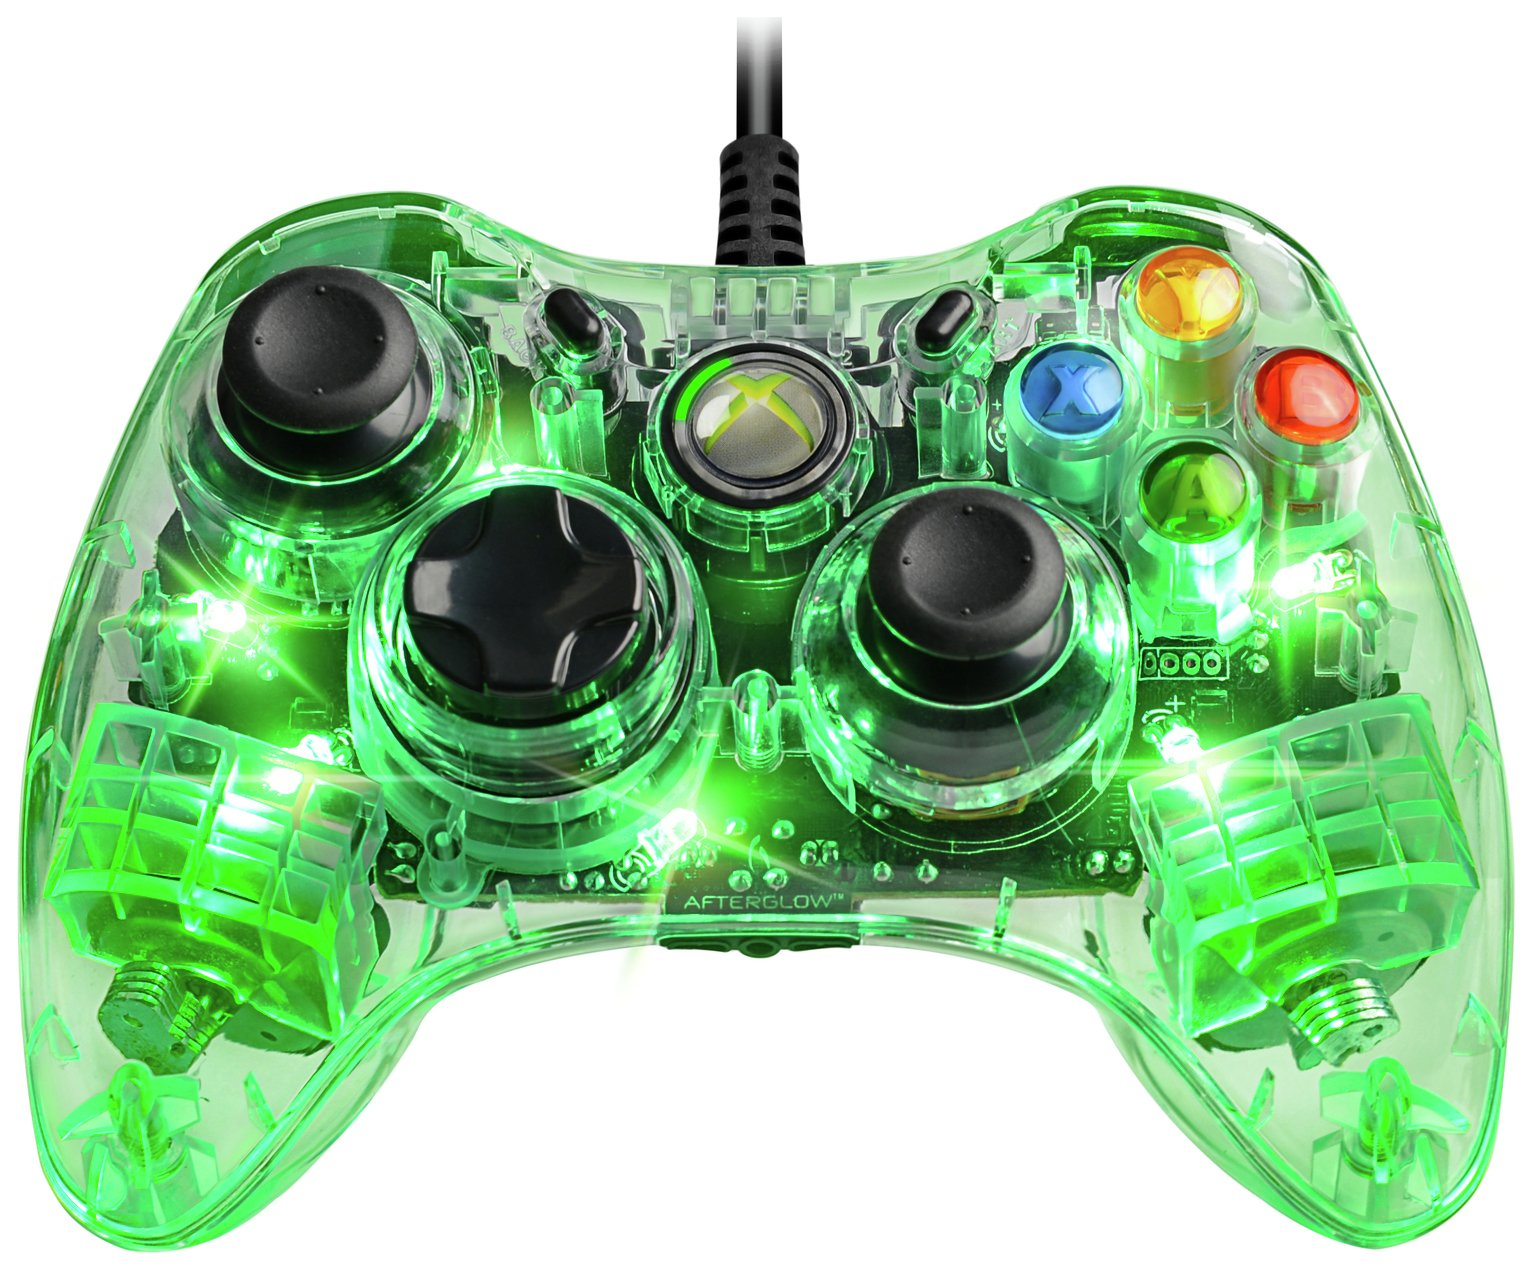 Compare prices for Afterglow Xbox 360 Wired Controller Green